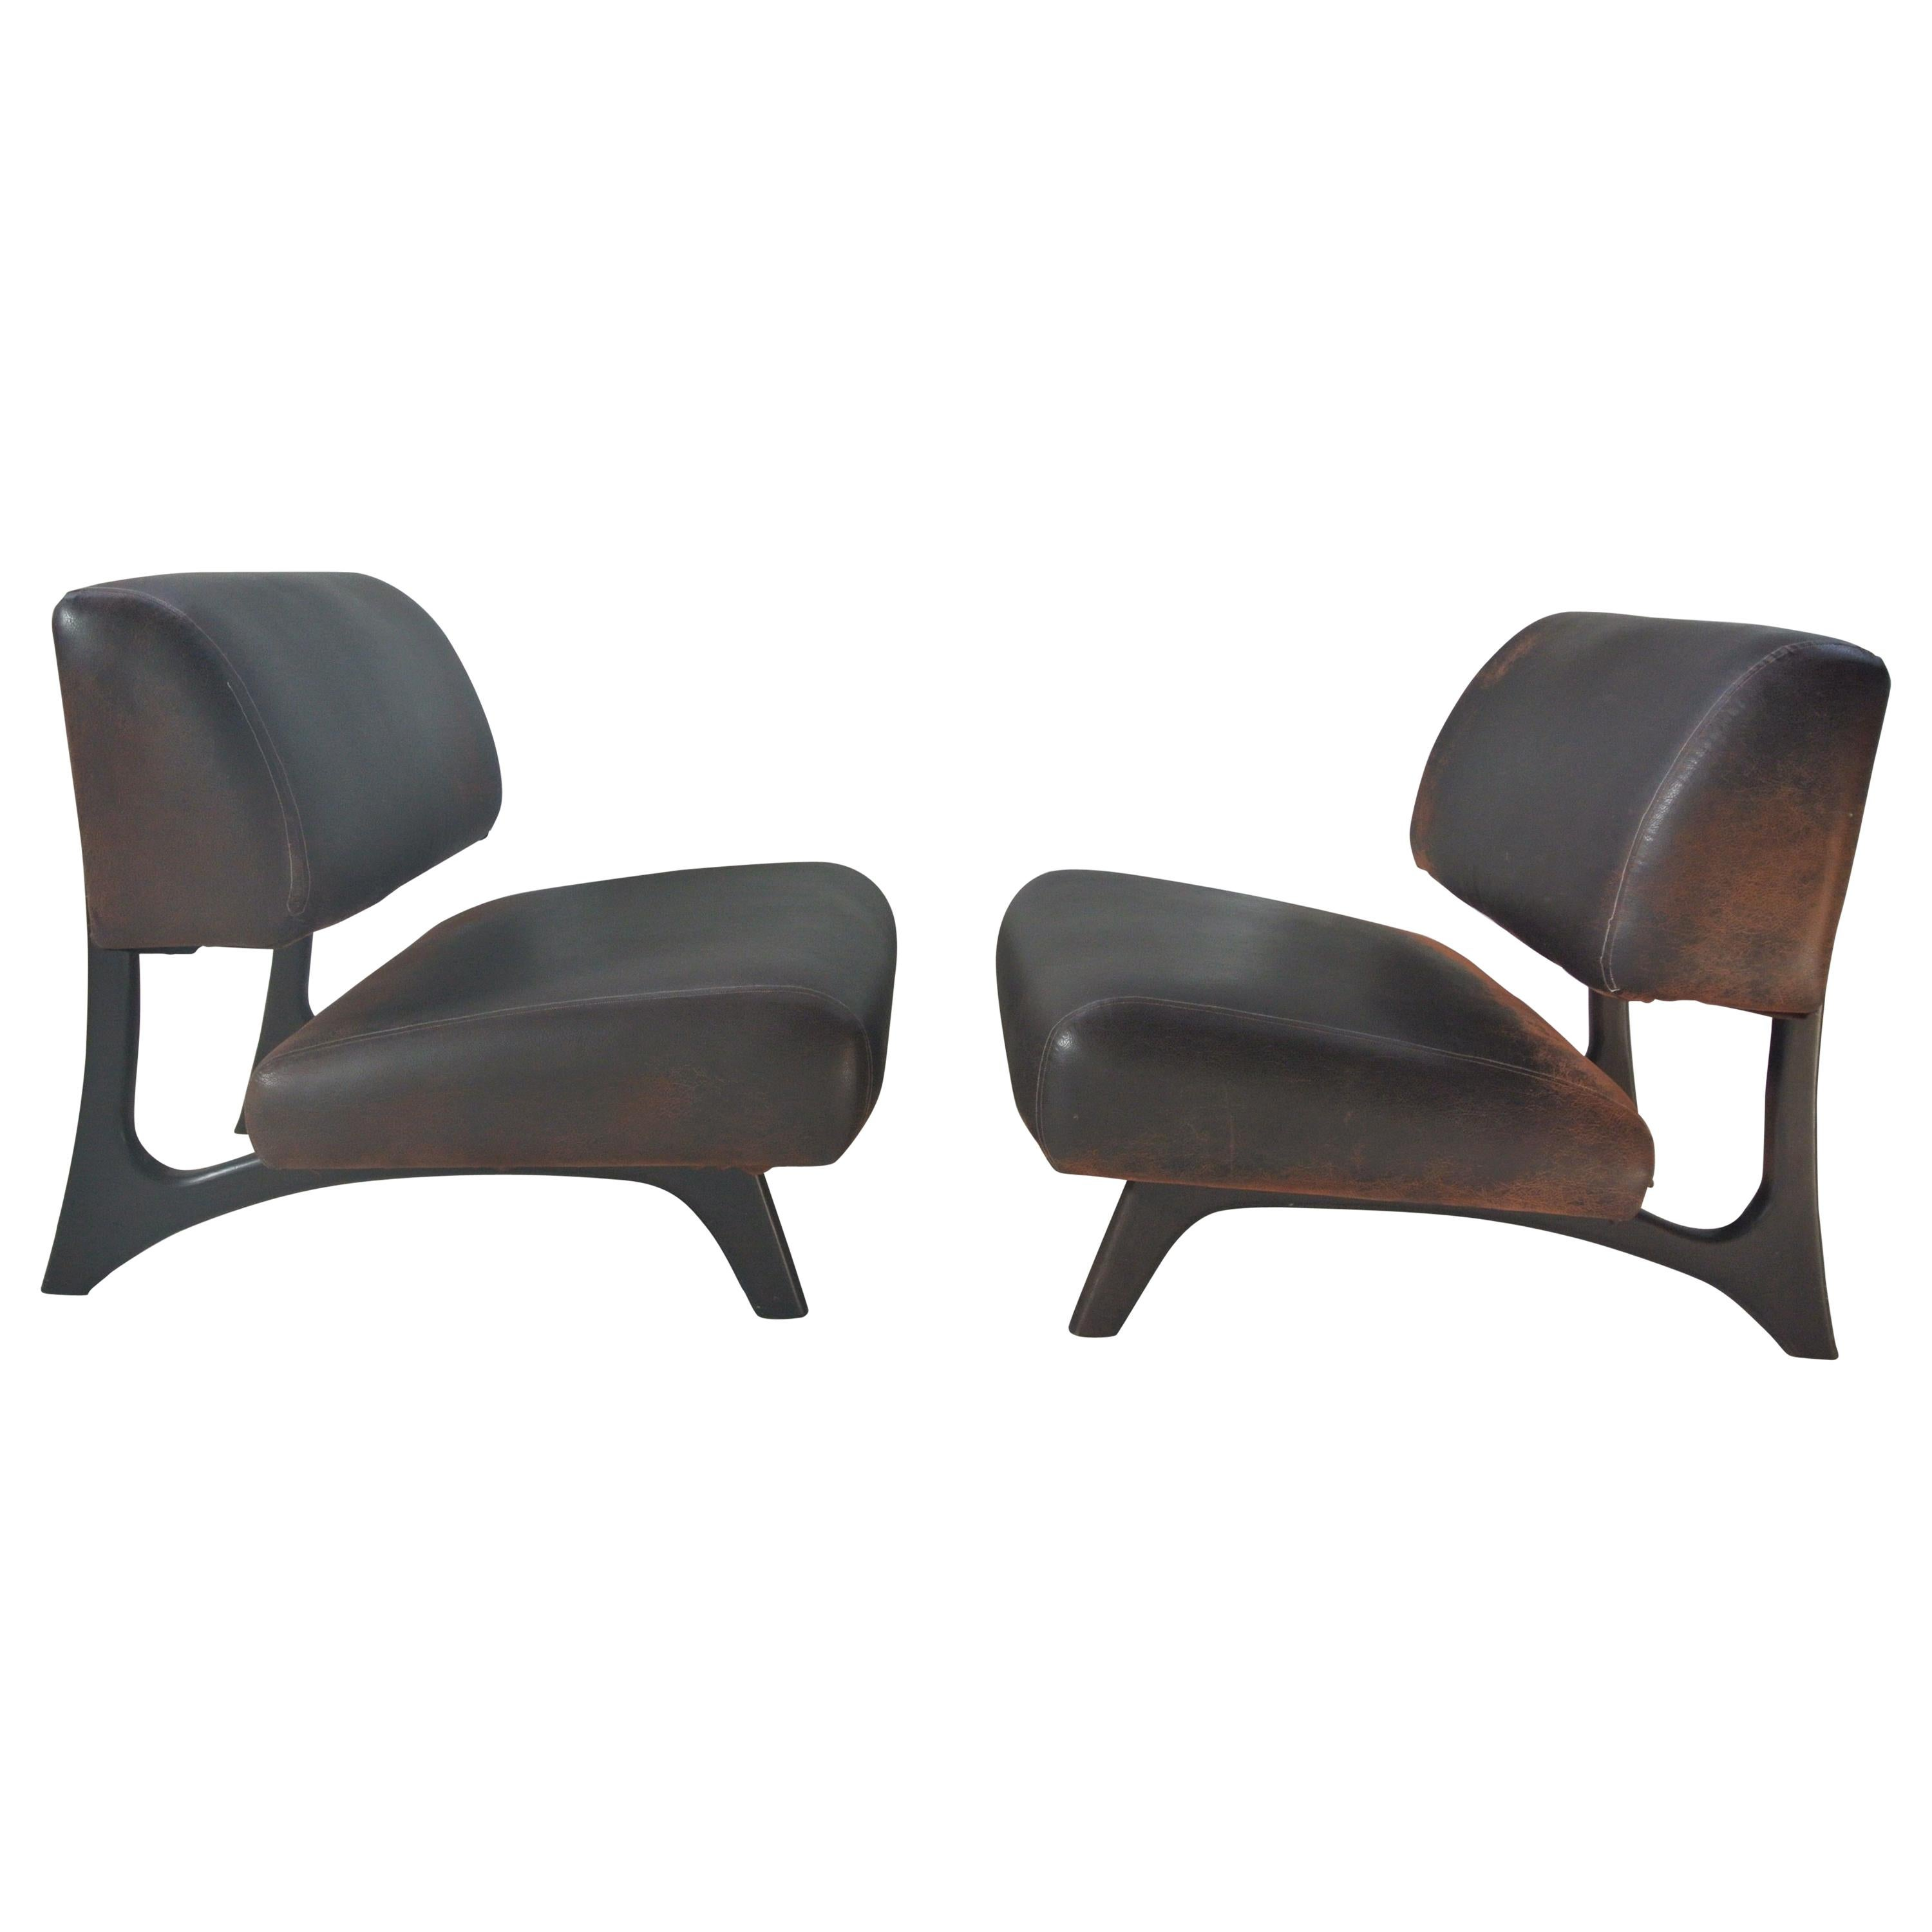 sc 1 st  1stDibs & Mid-Century Modern Oversized Club Chairs For Sale at 1stdibs